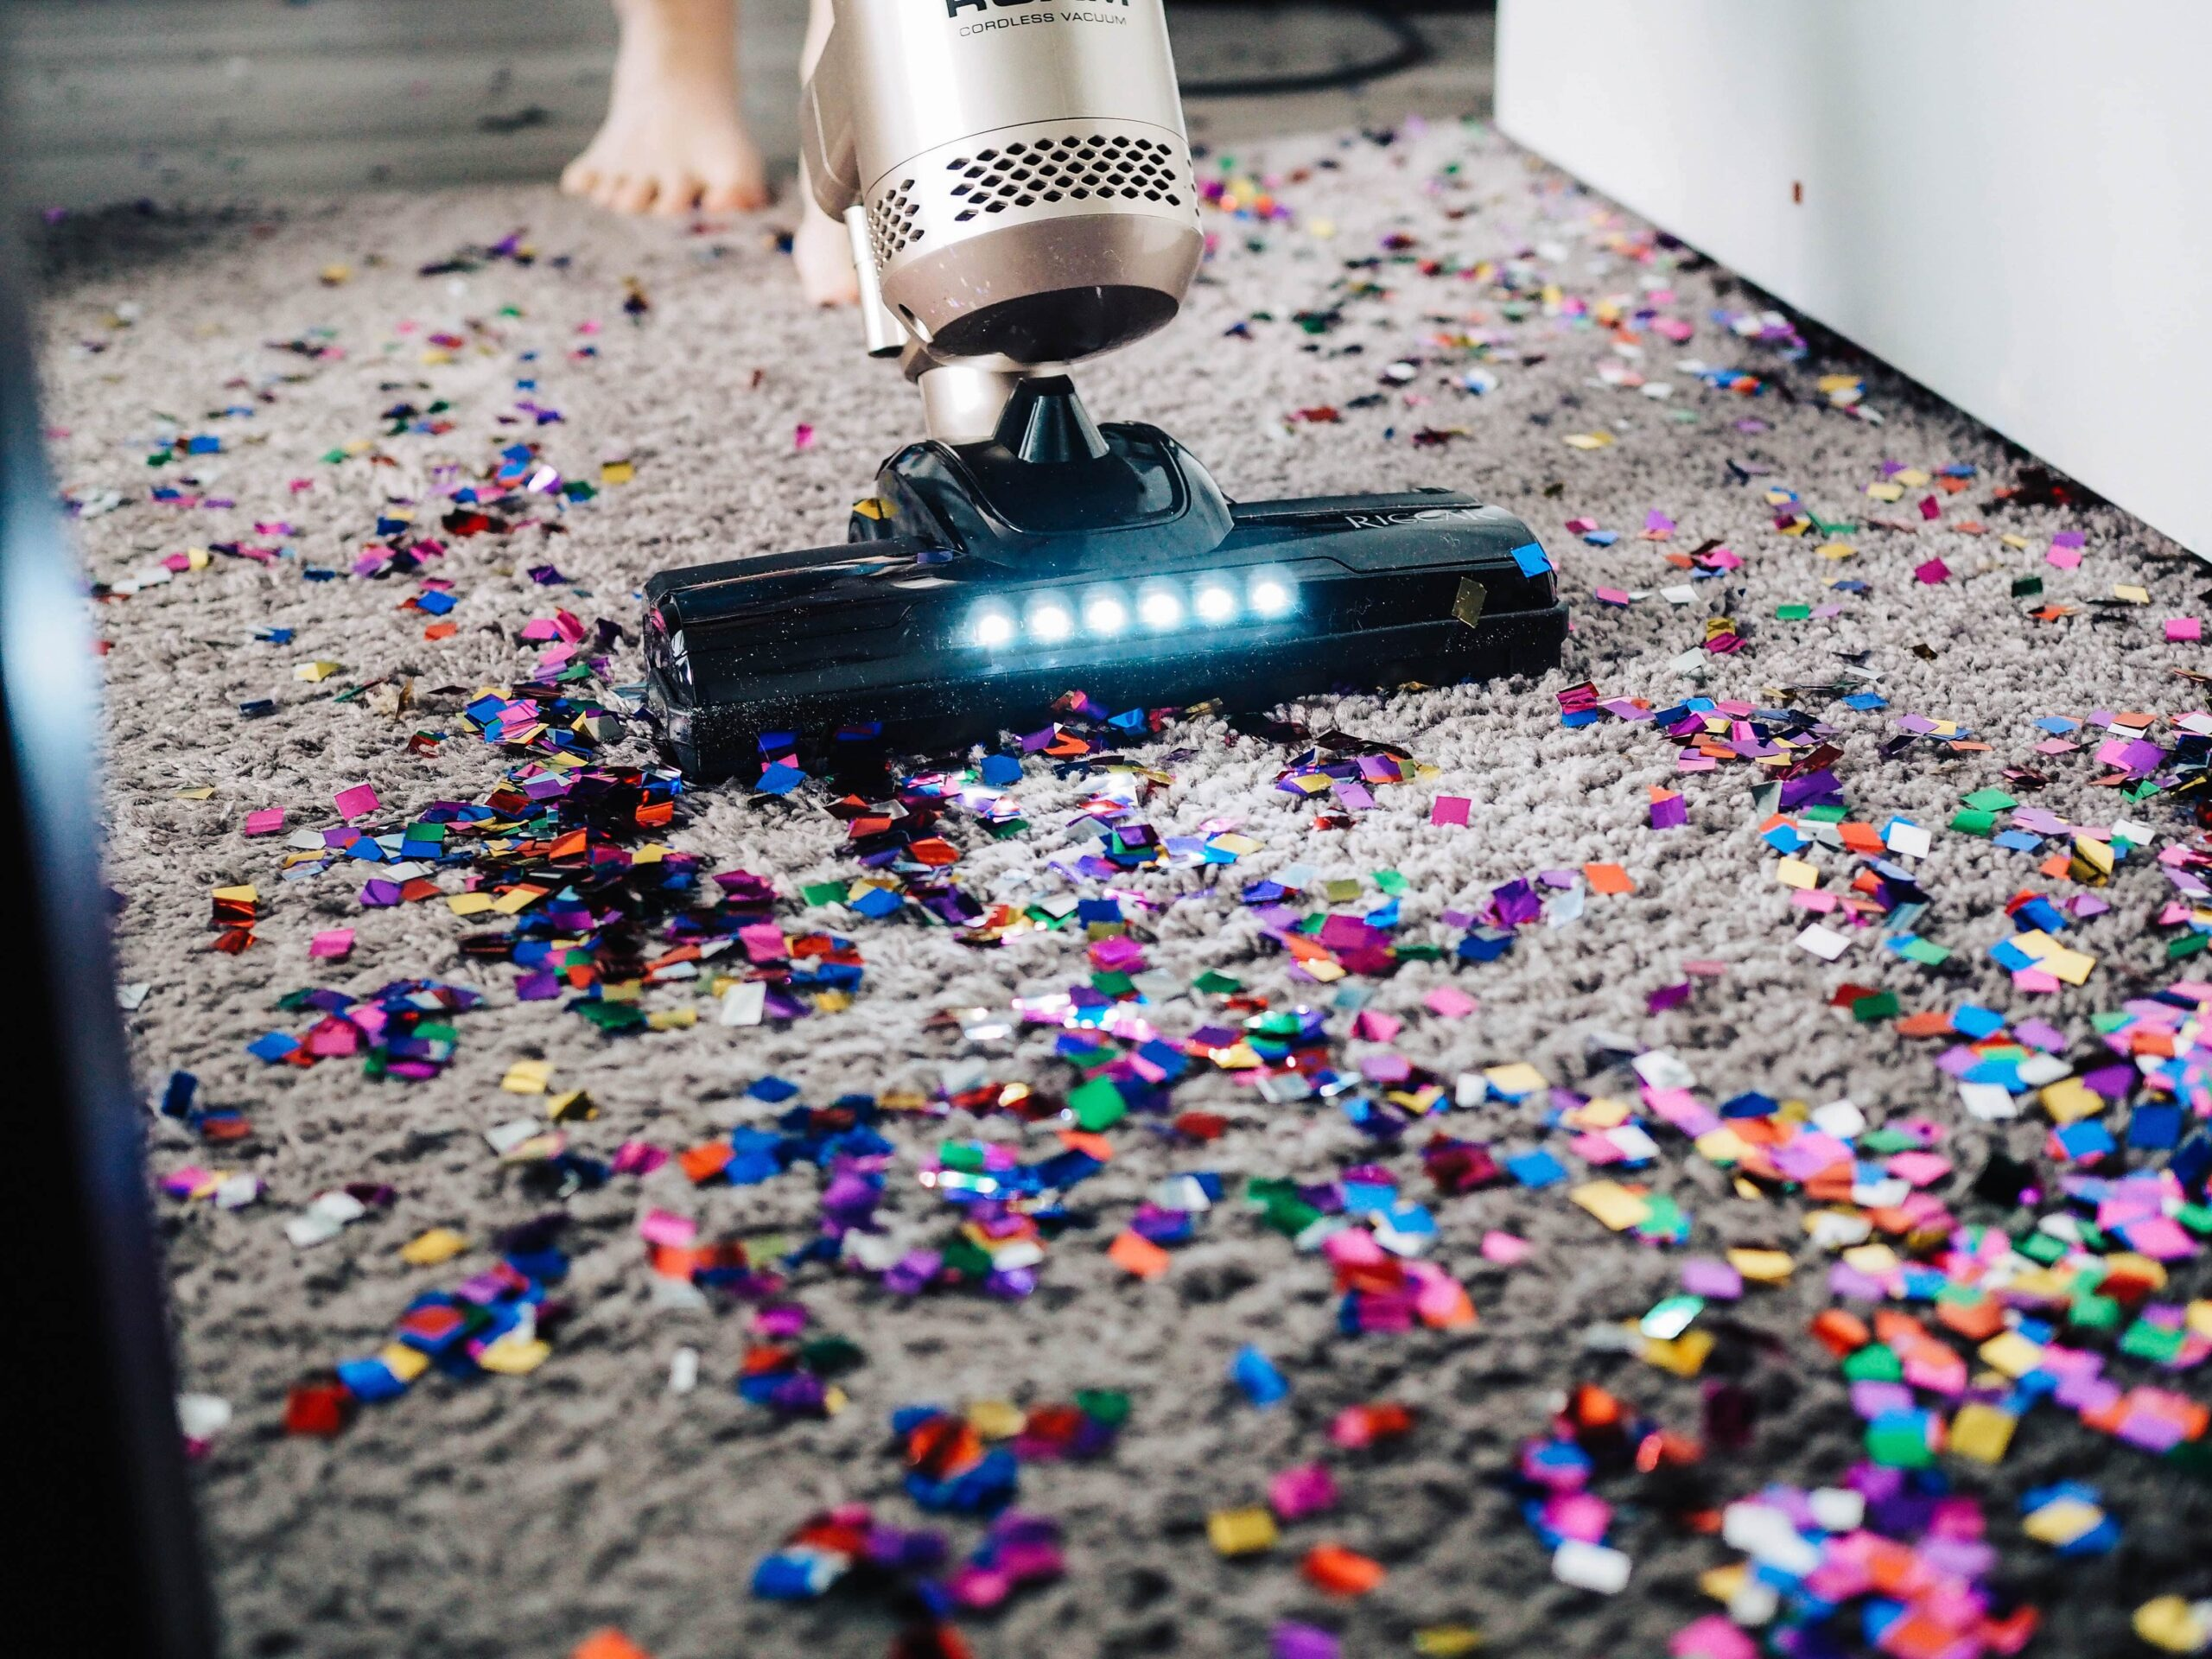 Top 10 Best Carpet Cleaning Machines|Buying Guide 2021